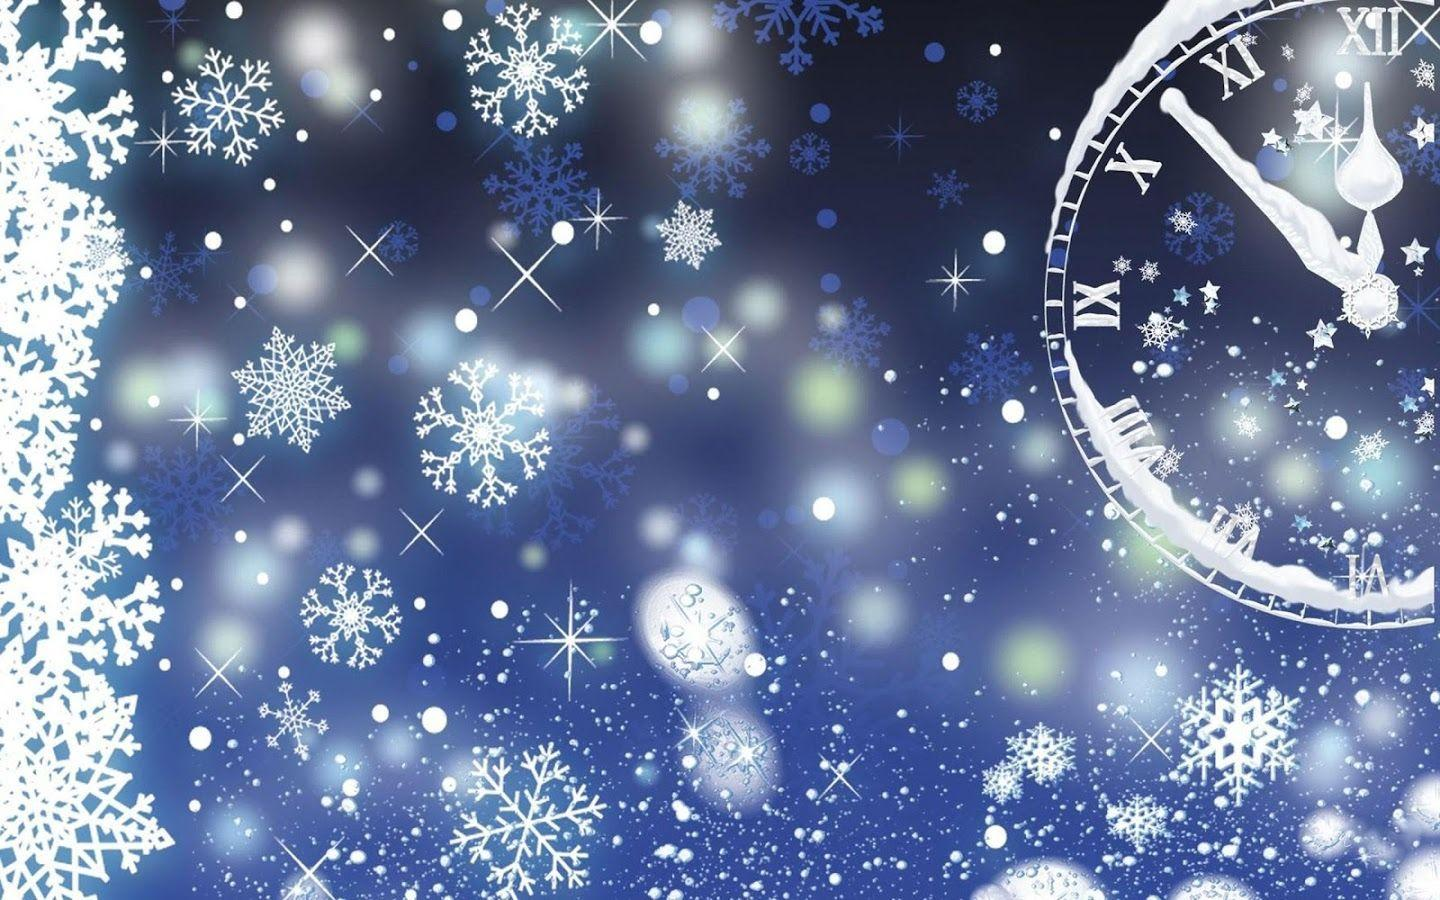 New Year Eve Wallpaper Background